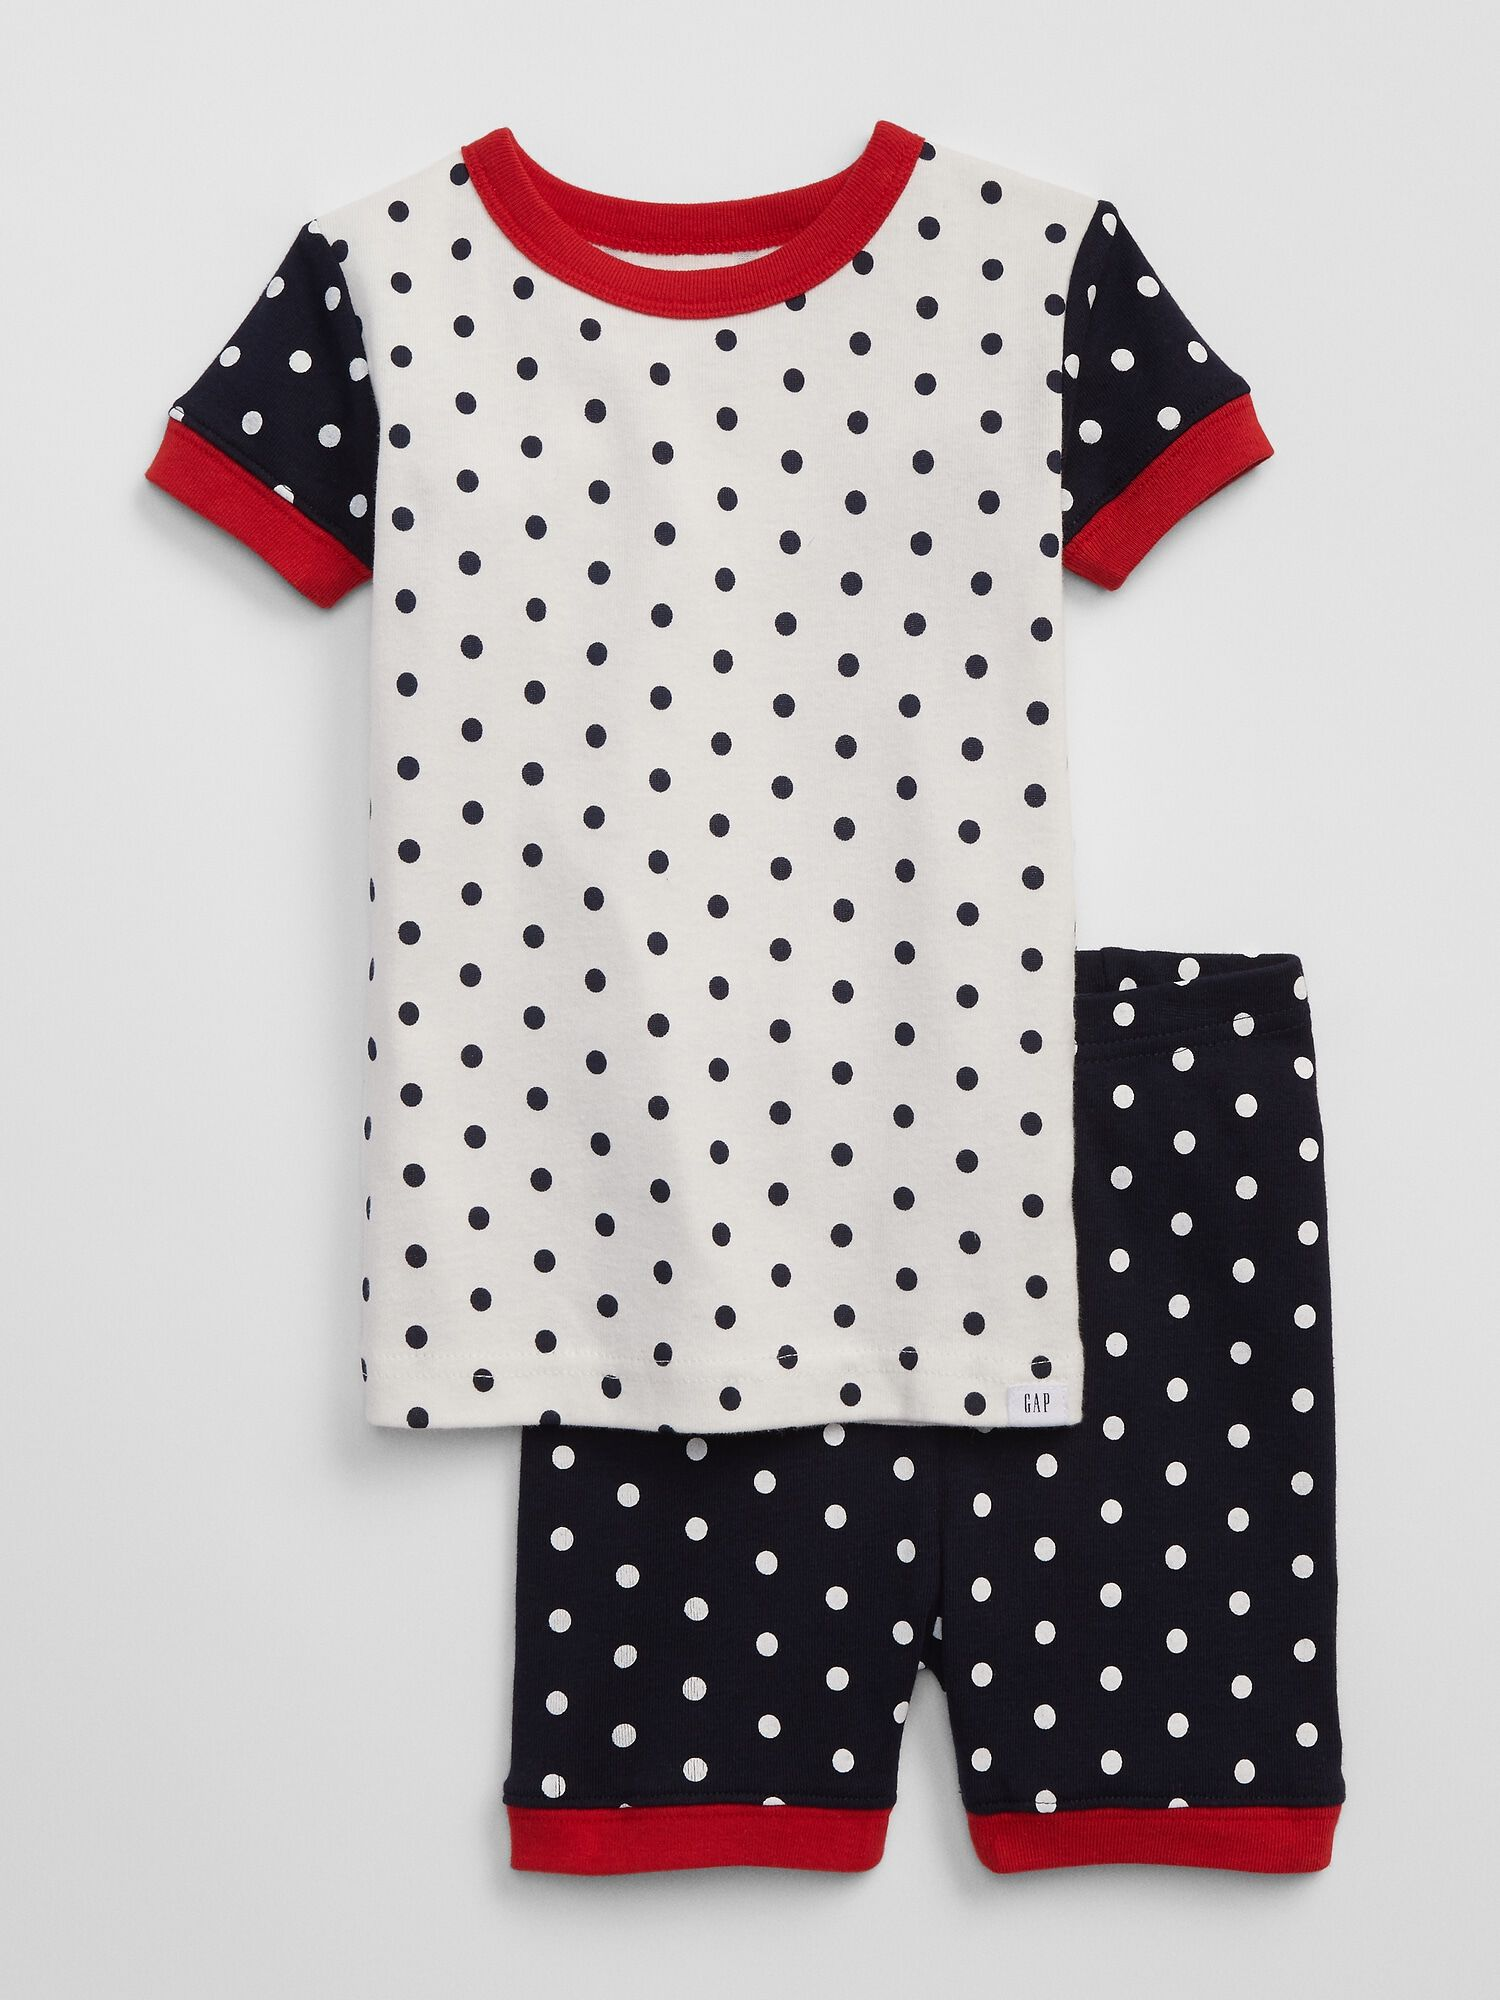 Girl Gap Pink Silver Spotty Playsuit Age 18 24 Mths Baby & Toddler Clothing Outfits & Sets